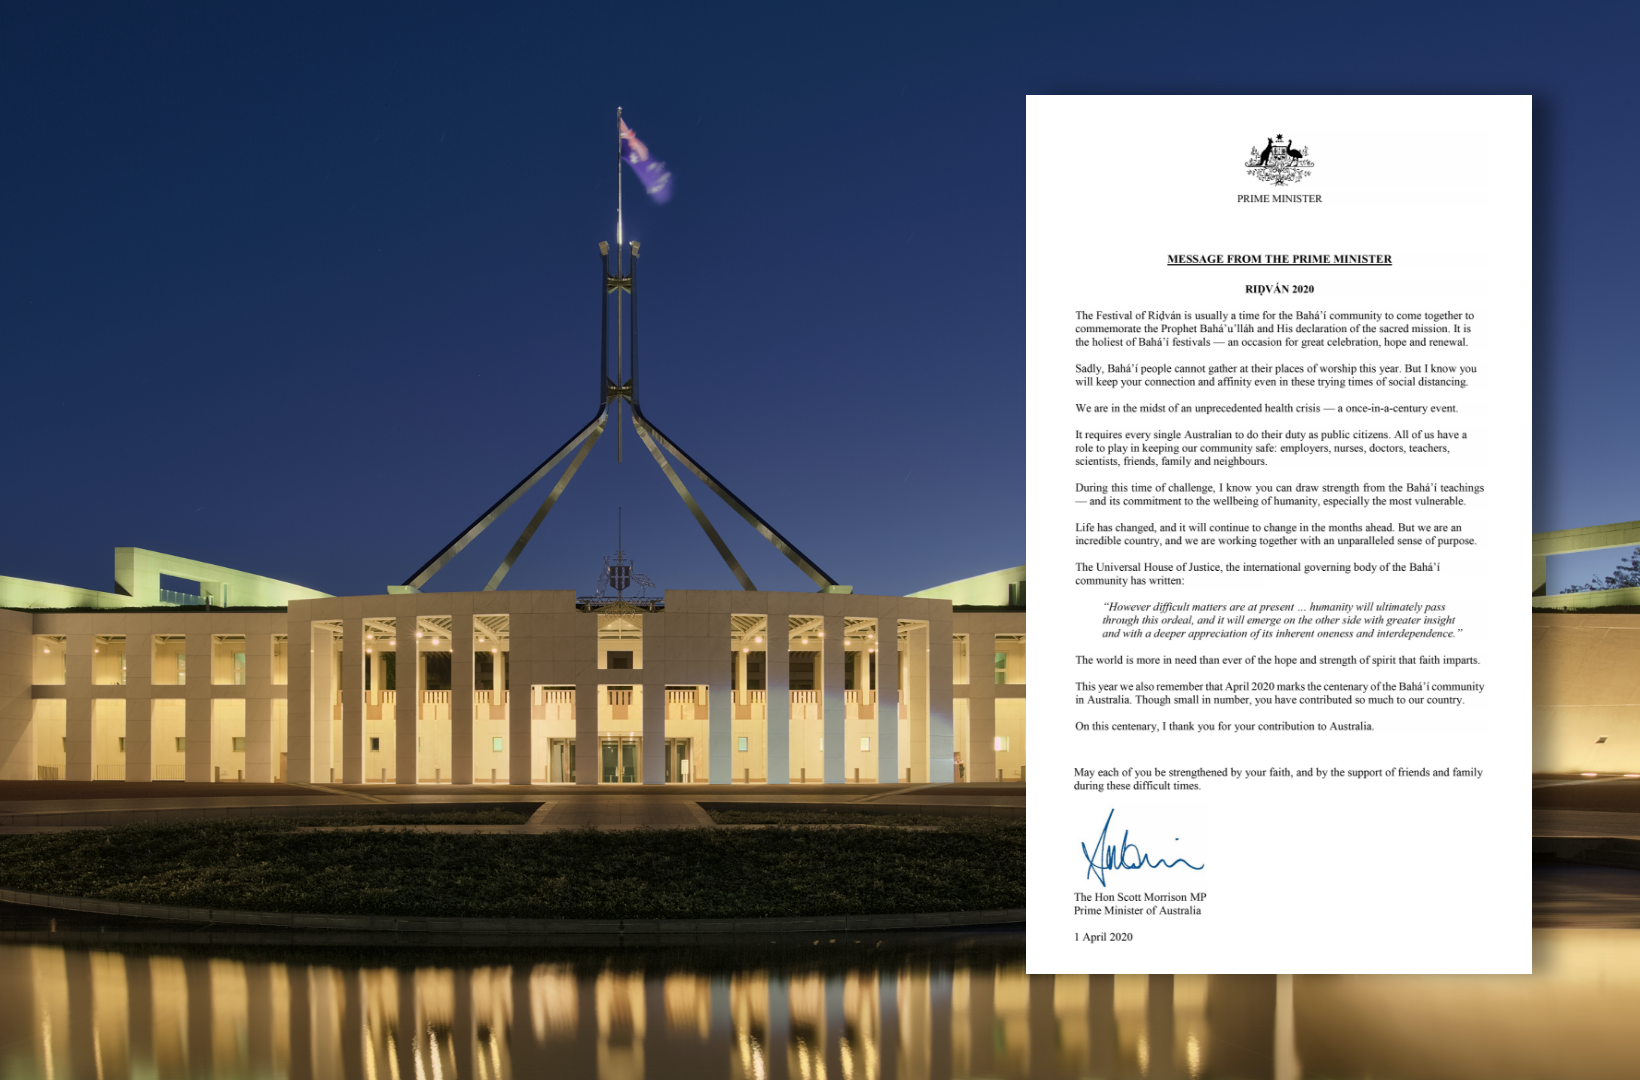 A message sent to the Australian Baha'i community by Prime Minister Scott Morrison on the occasion of the Ridvan festival, expresses gratitude for the contributions the community has made to society over the last century and calls attention to the role it can continue to play during this crisis.